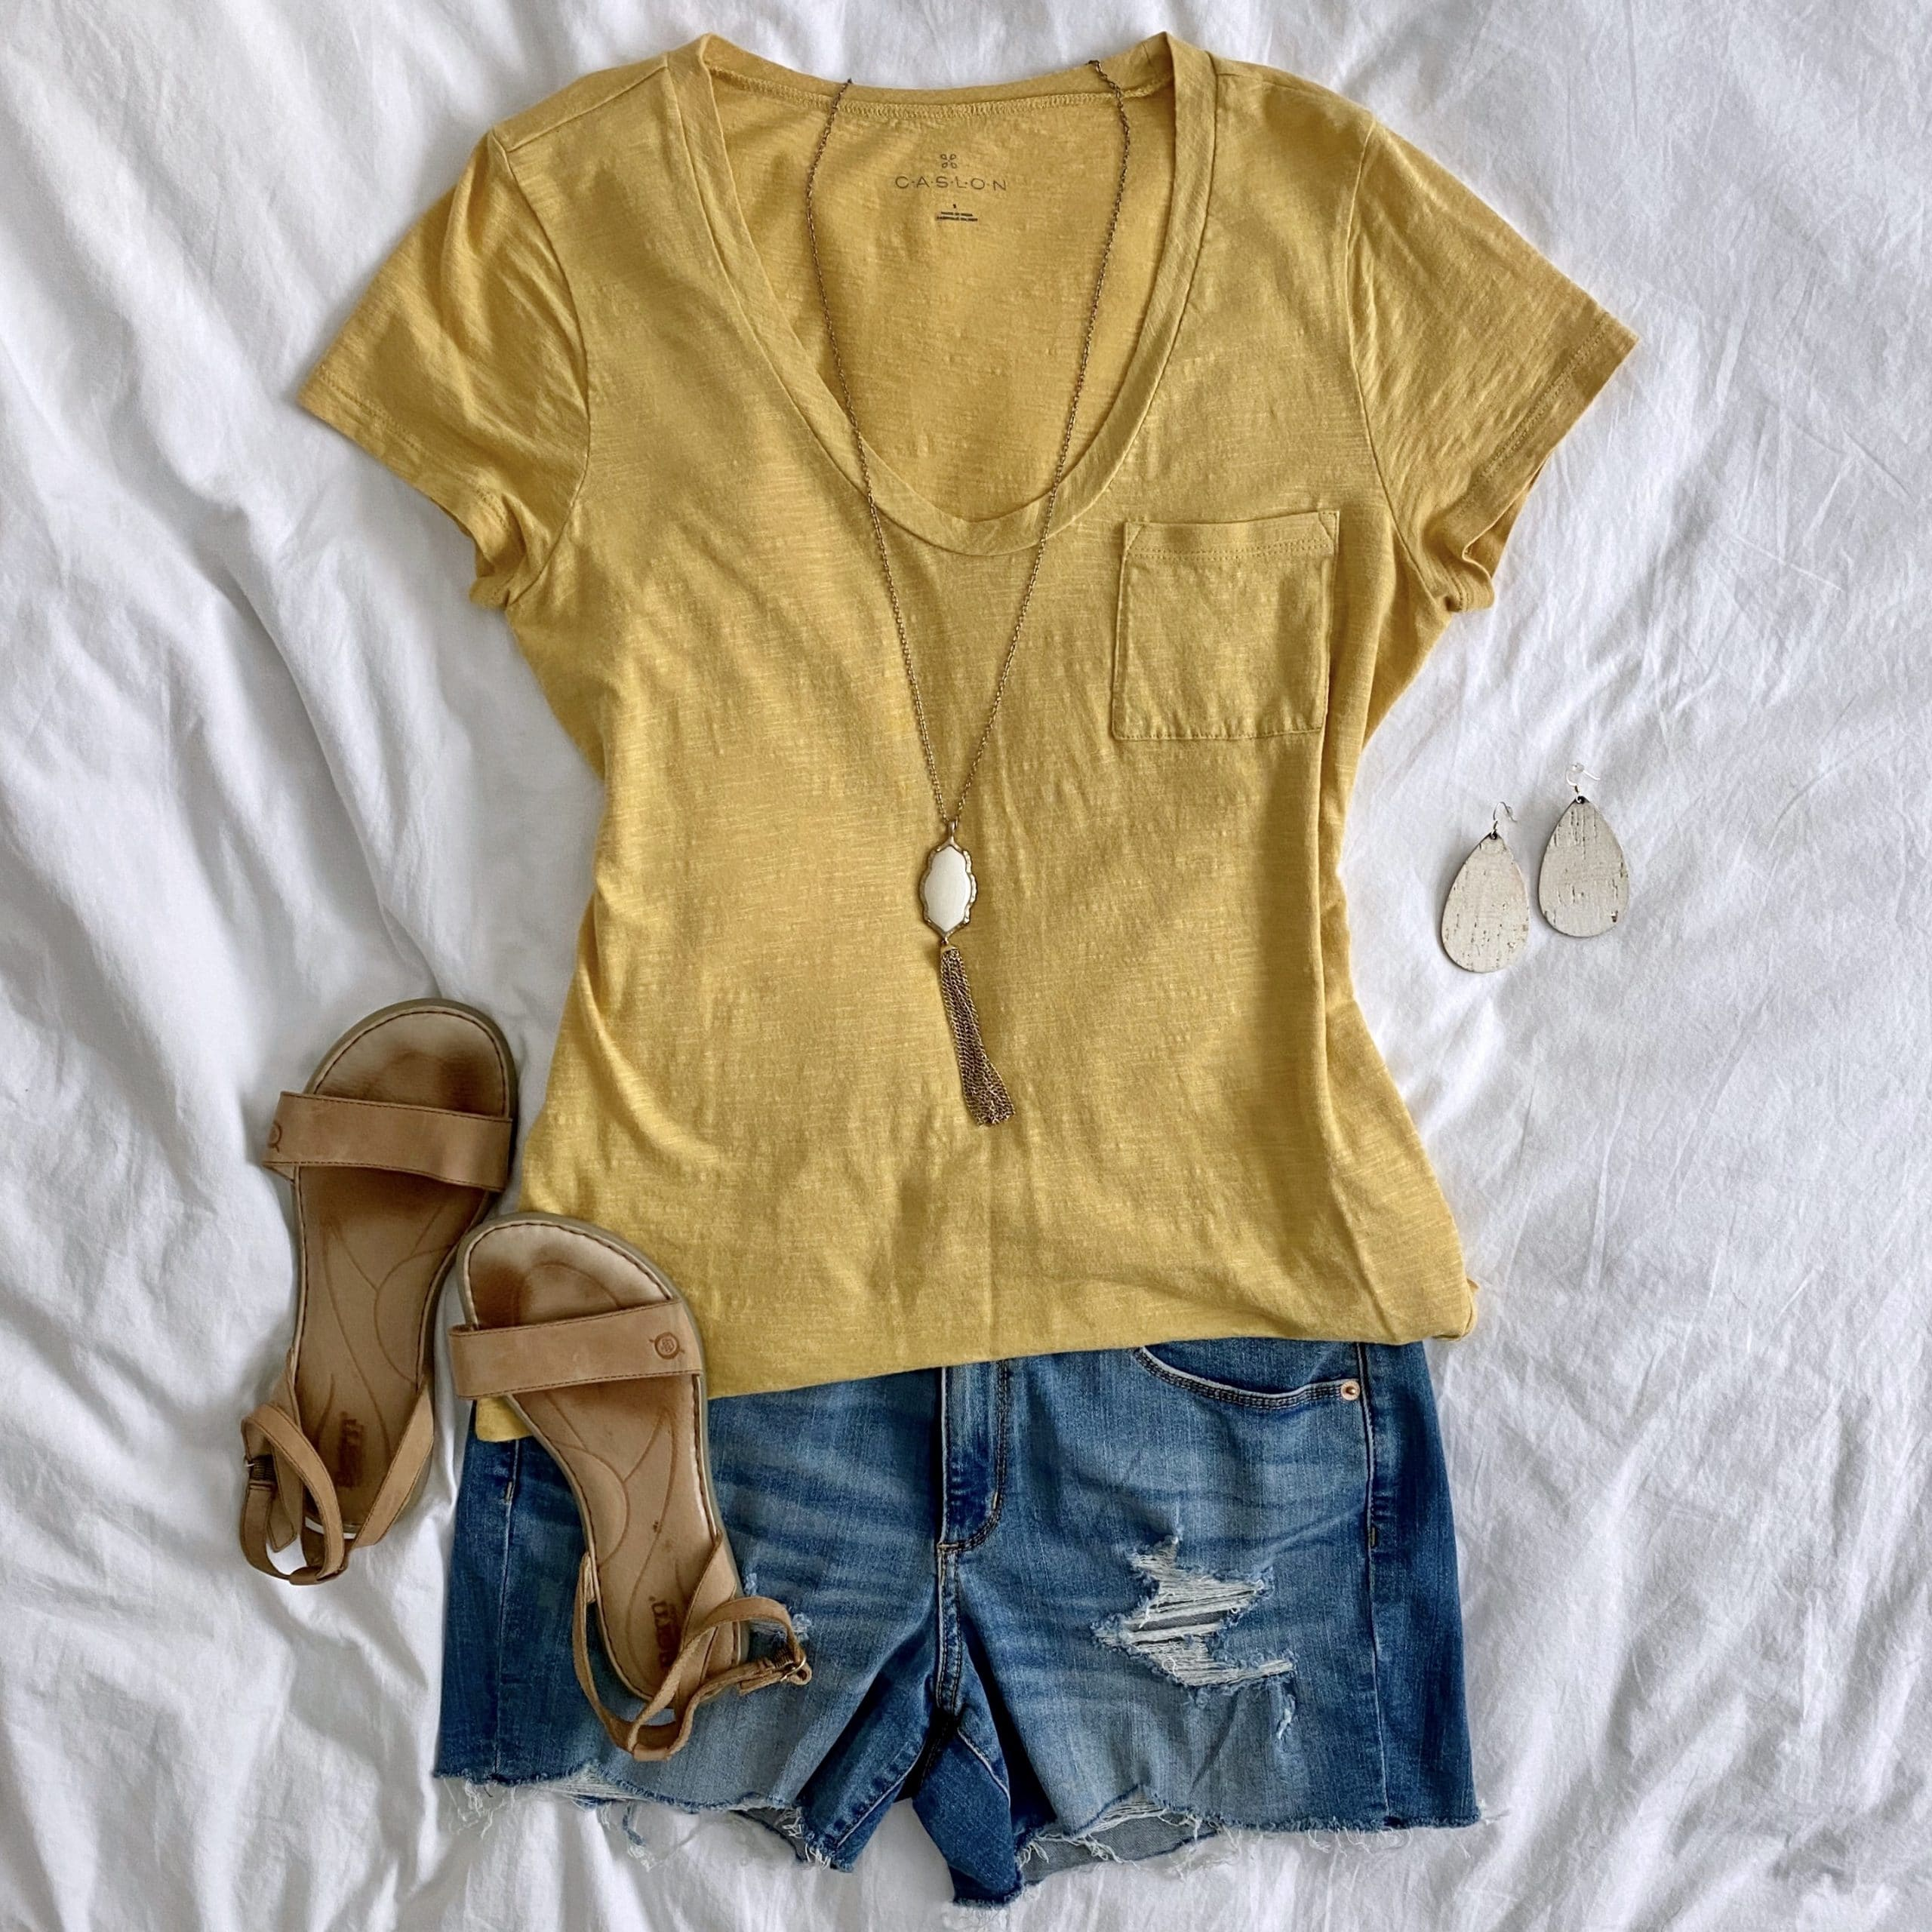 Summer Shorts Outfit: mustard tee + distressed jean shorts + tan leather sandals + white and gold tassel pendant necklace + white leather earrings